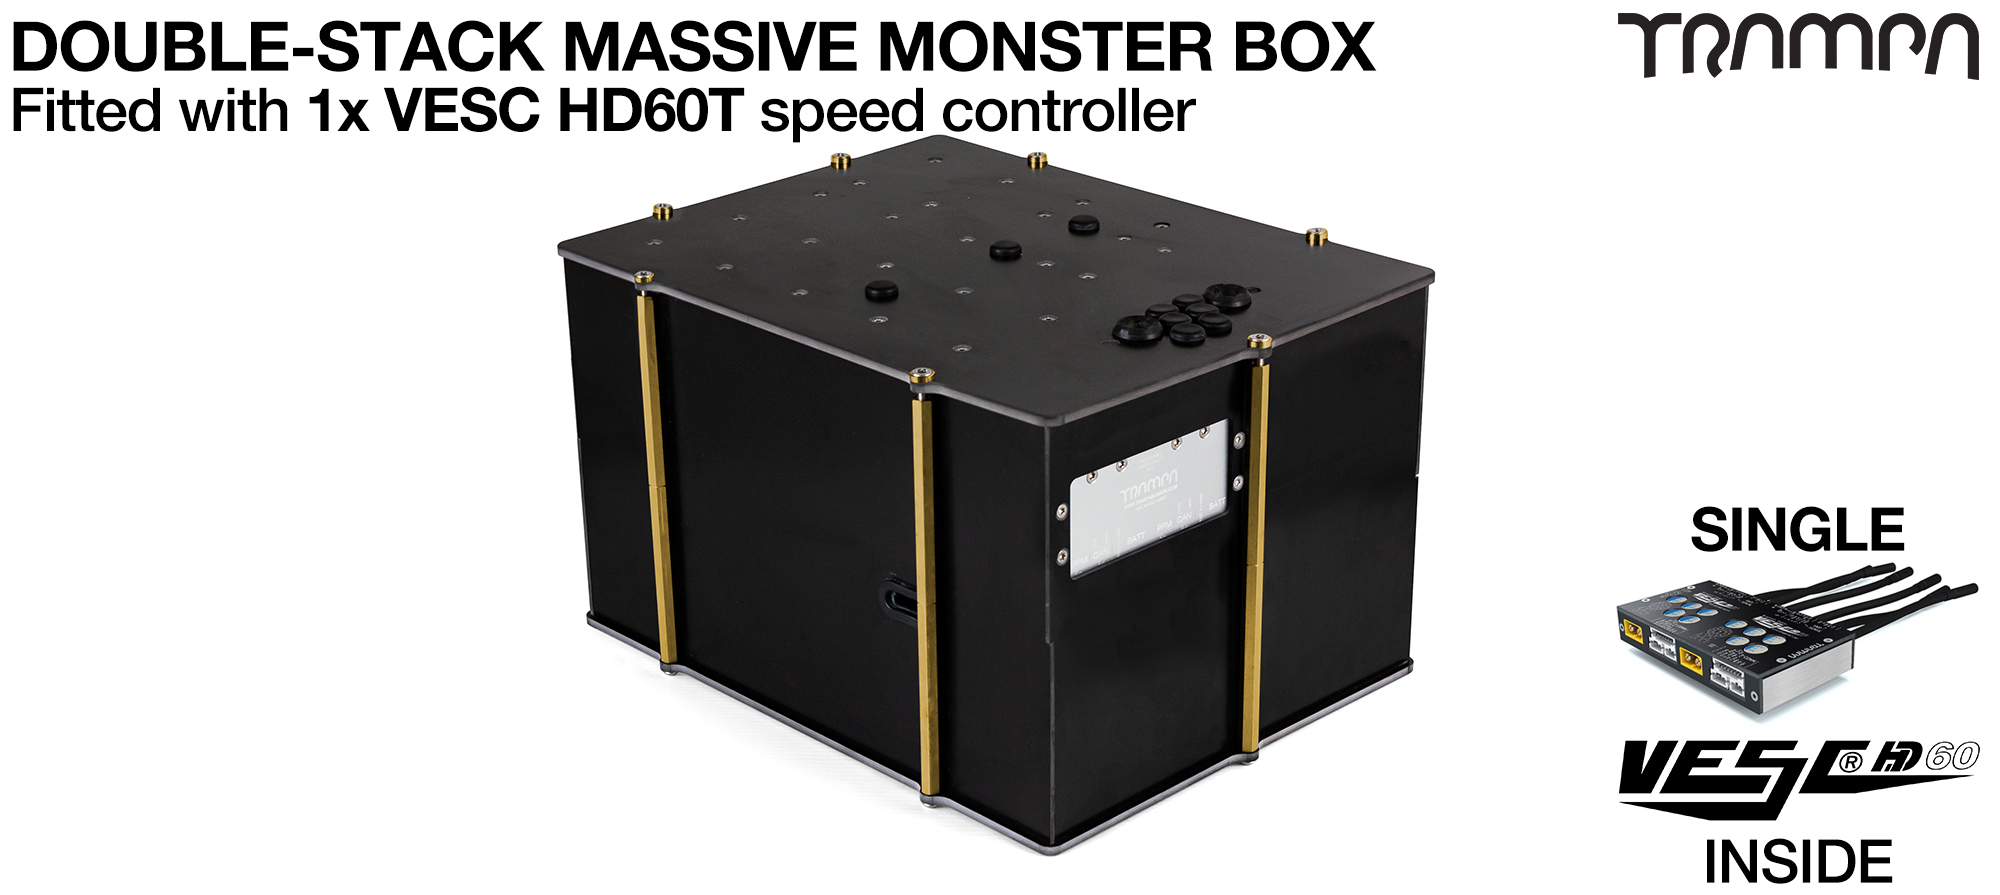 2WD DOUBLE STACK MASSIVE MONSTER Box with 1x VESC HD-60Twin Fitted